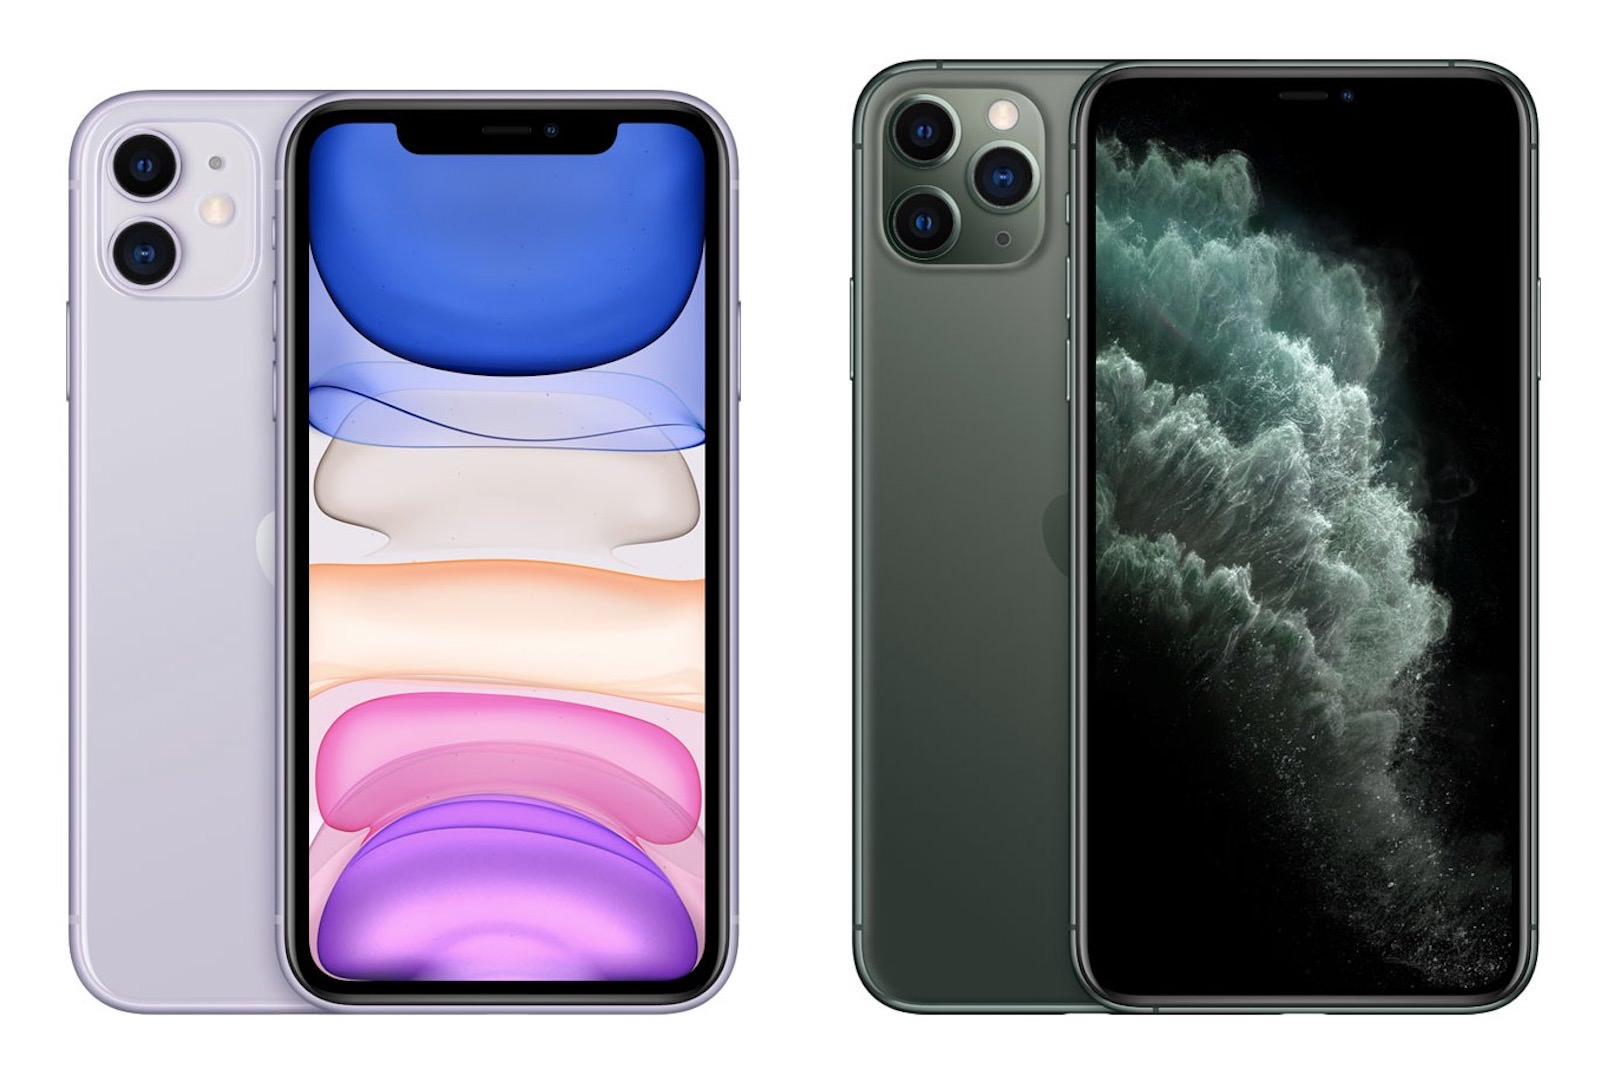 Iphone11 vs iphone 11 pro max